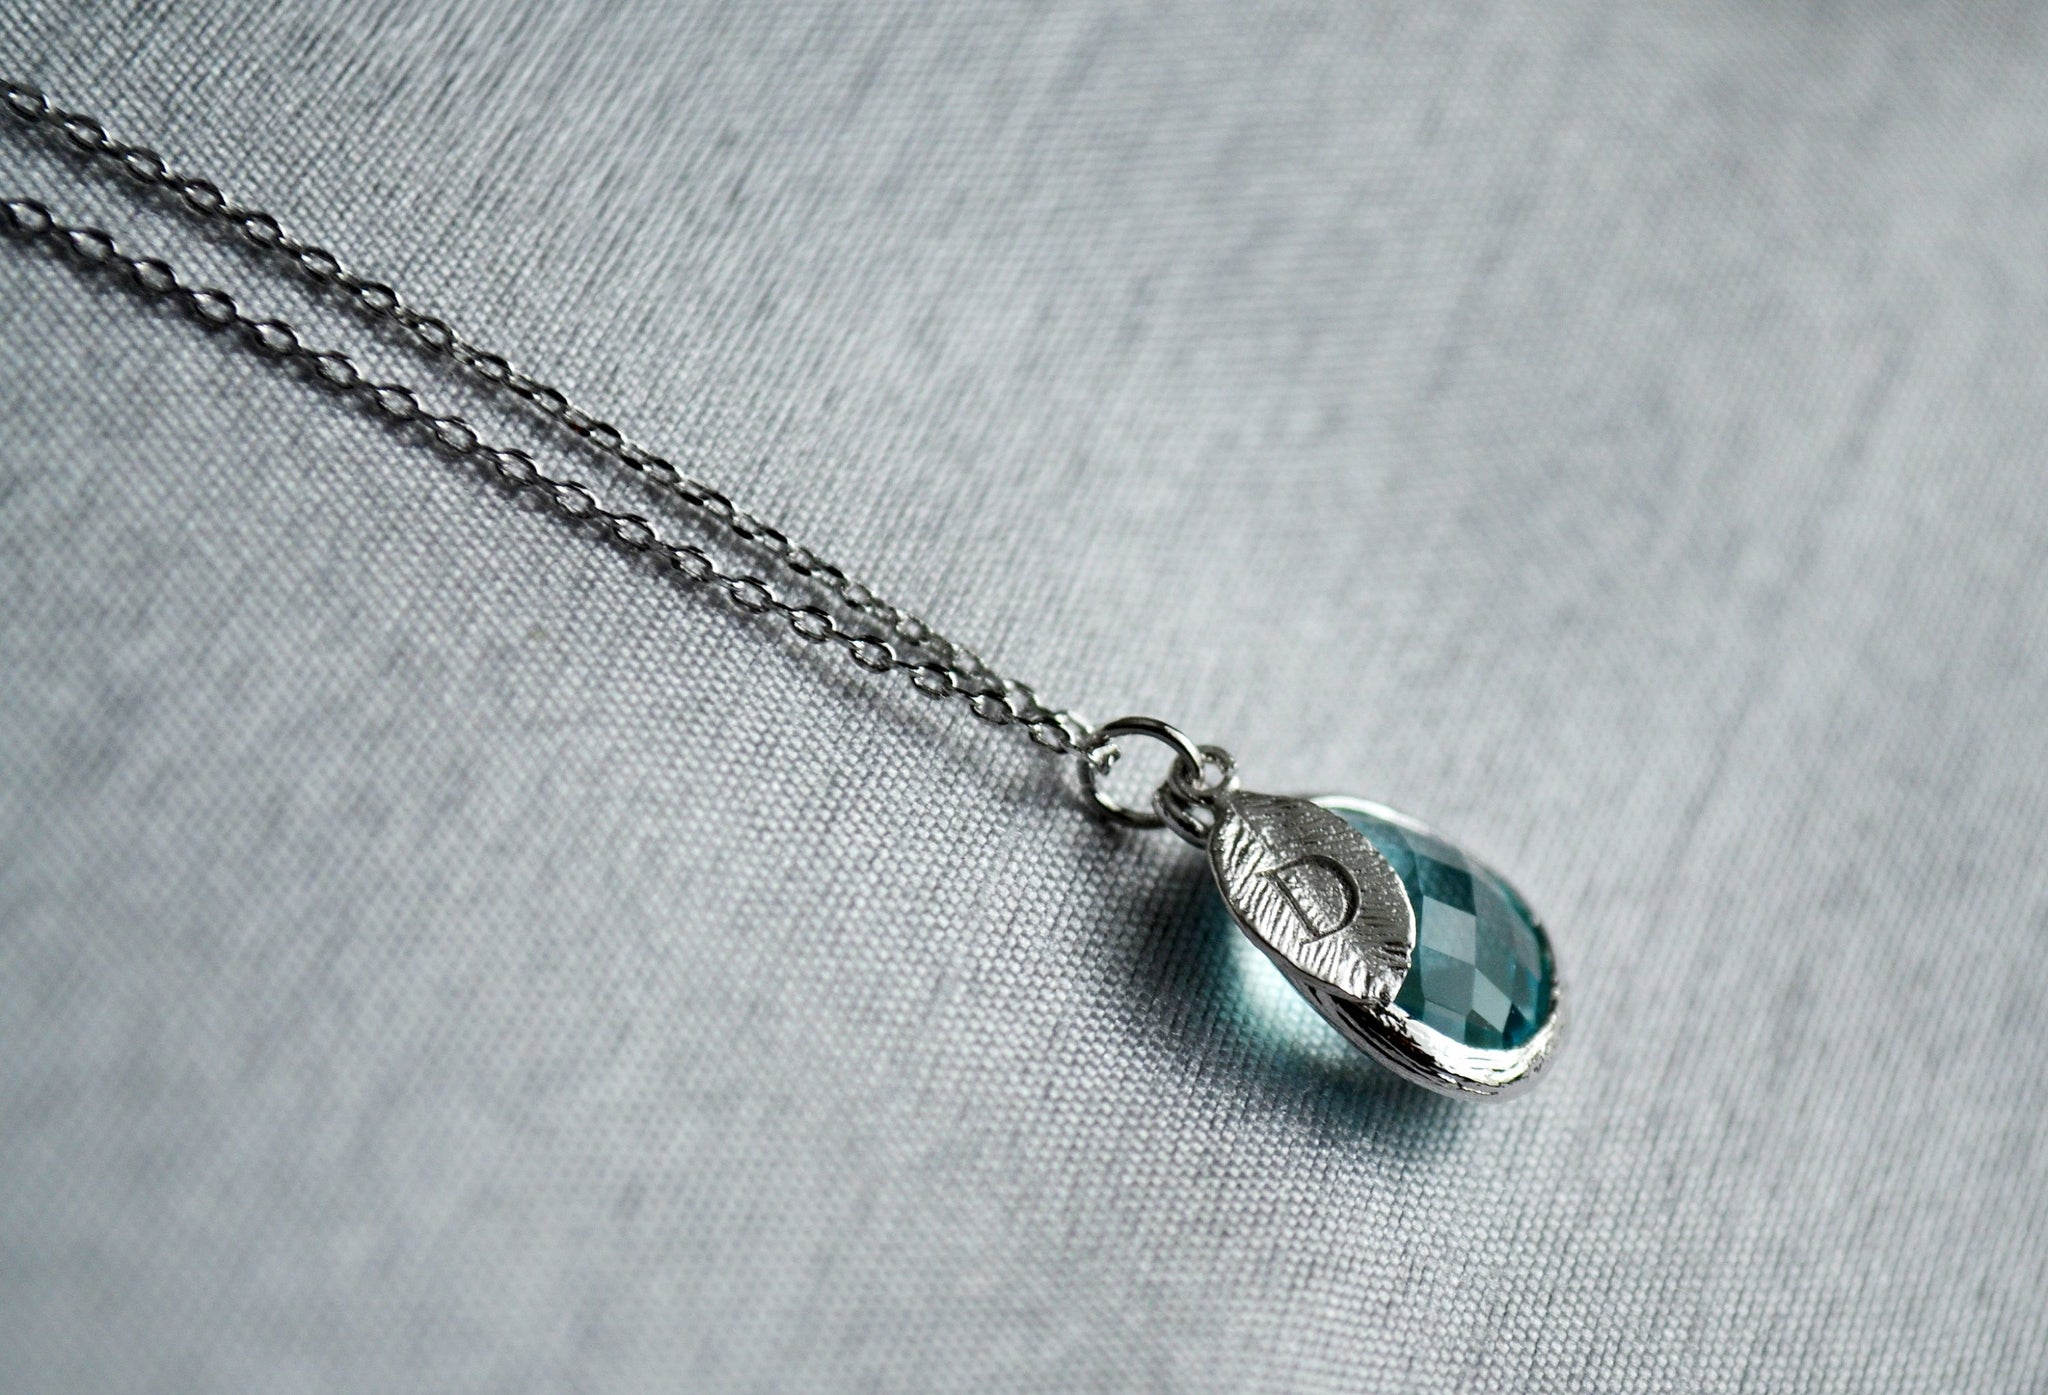 gift for her Aquamarine necklace anniversary gift March birthstone 925 silver necklace wife gift birthday gift delicate necklace